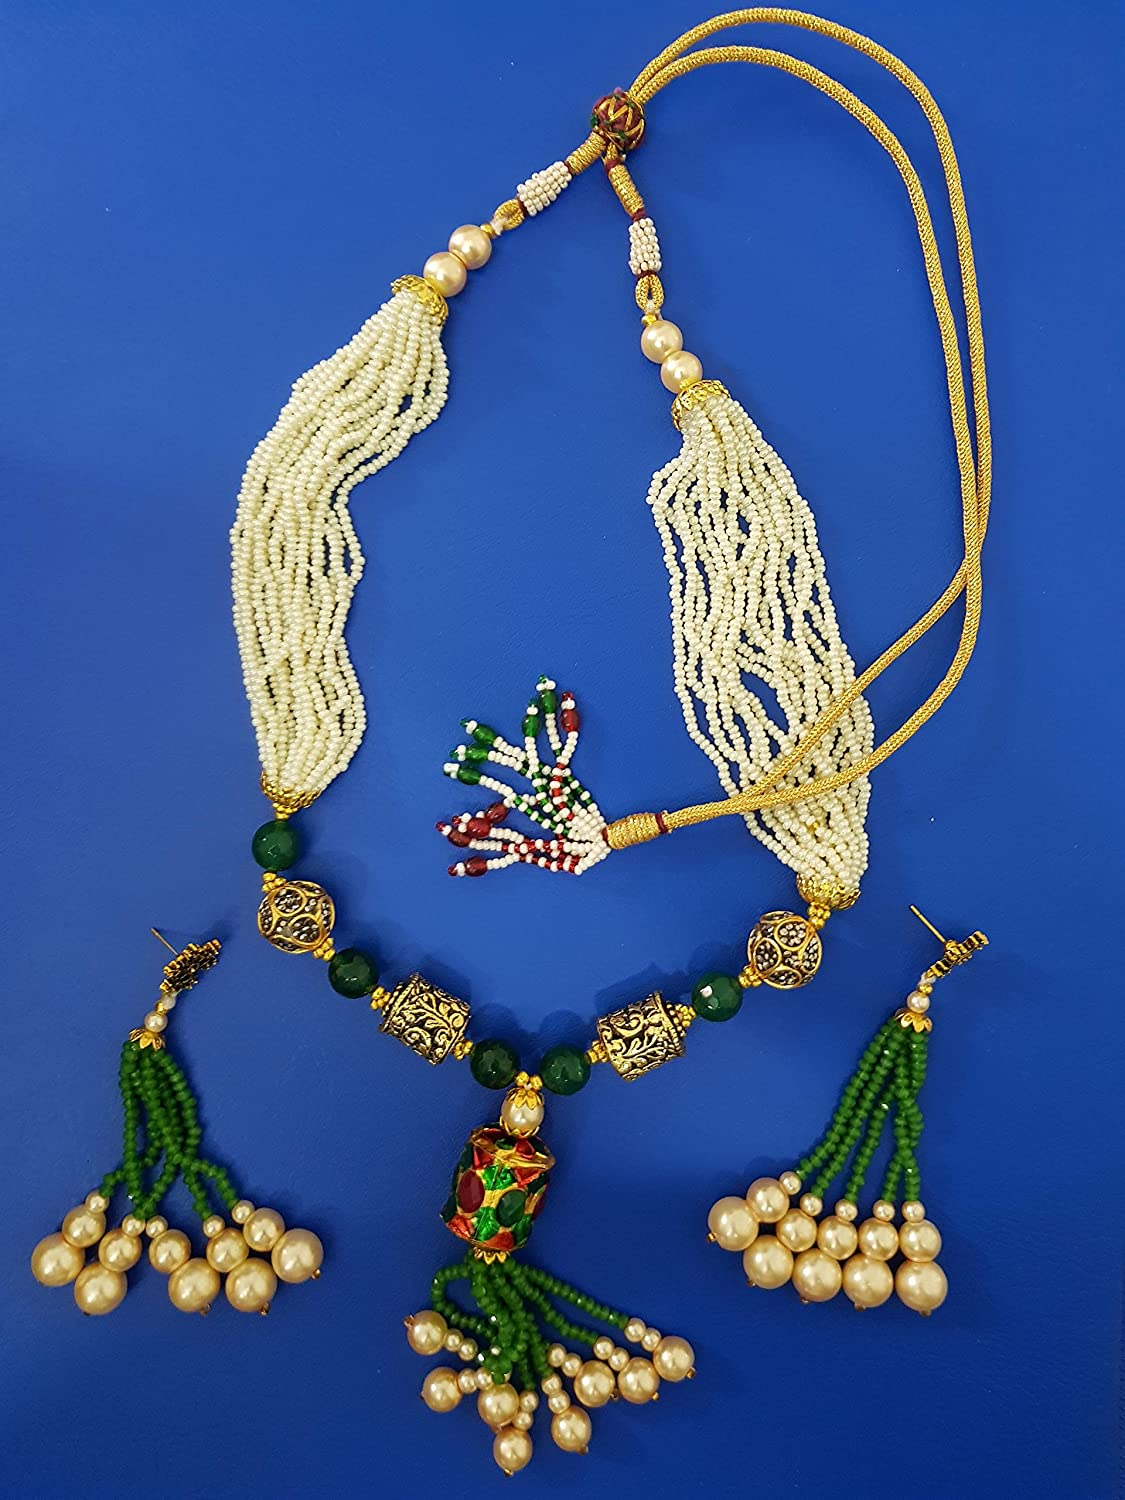 Sansar India Beaded Tassel Indian Necklace Jewelry for Girls and Women 1265a